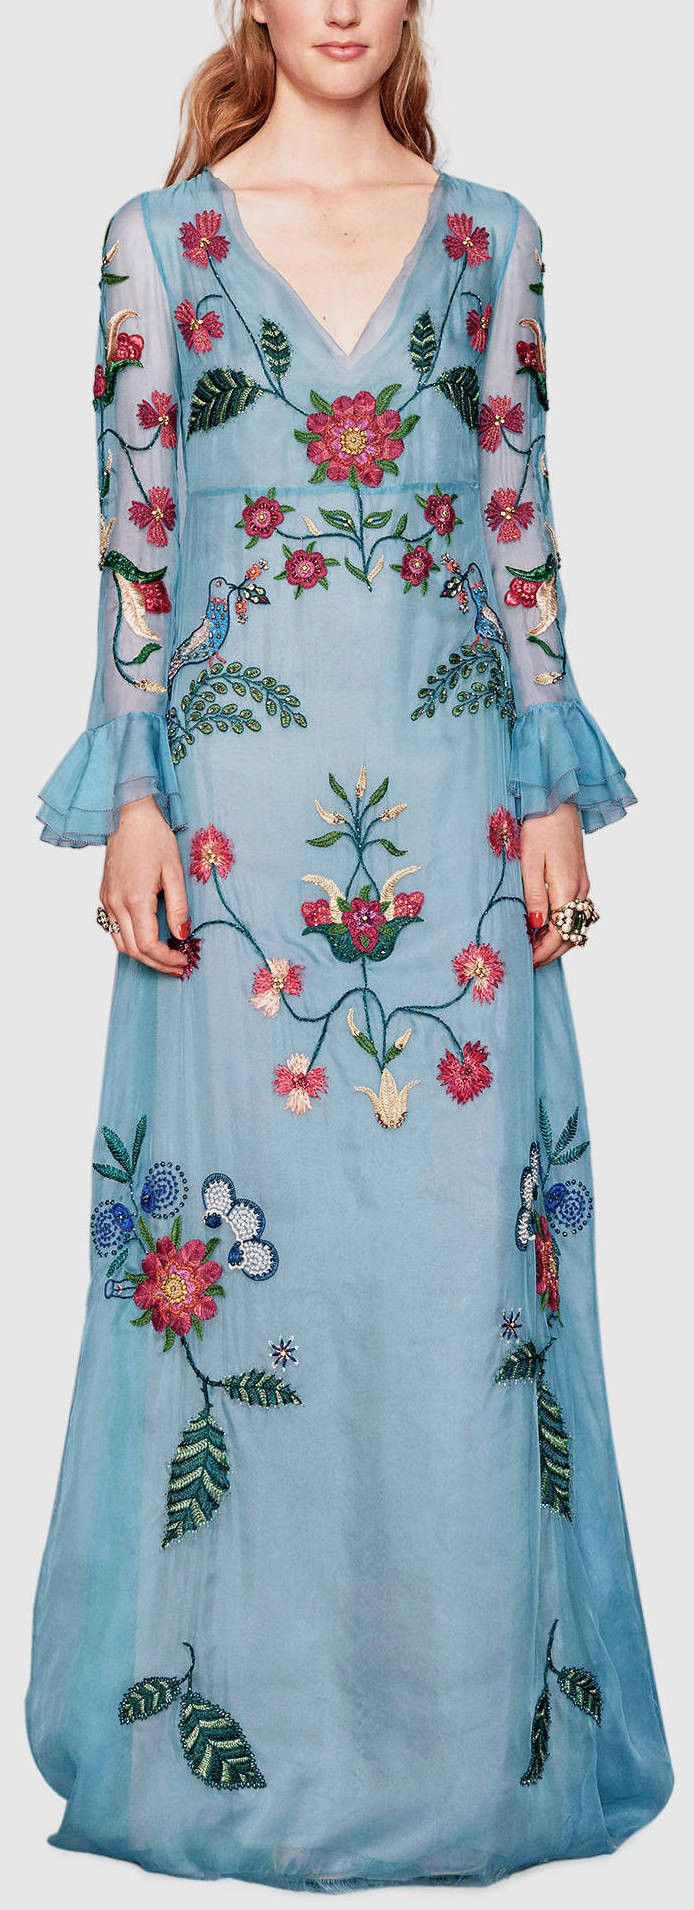 silk embroidered linen te9385 - photo #37